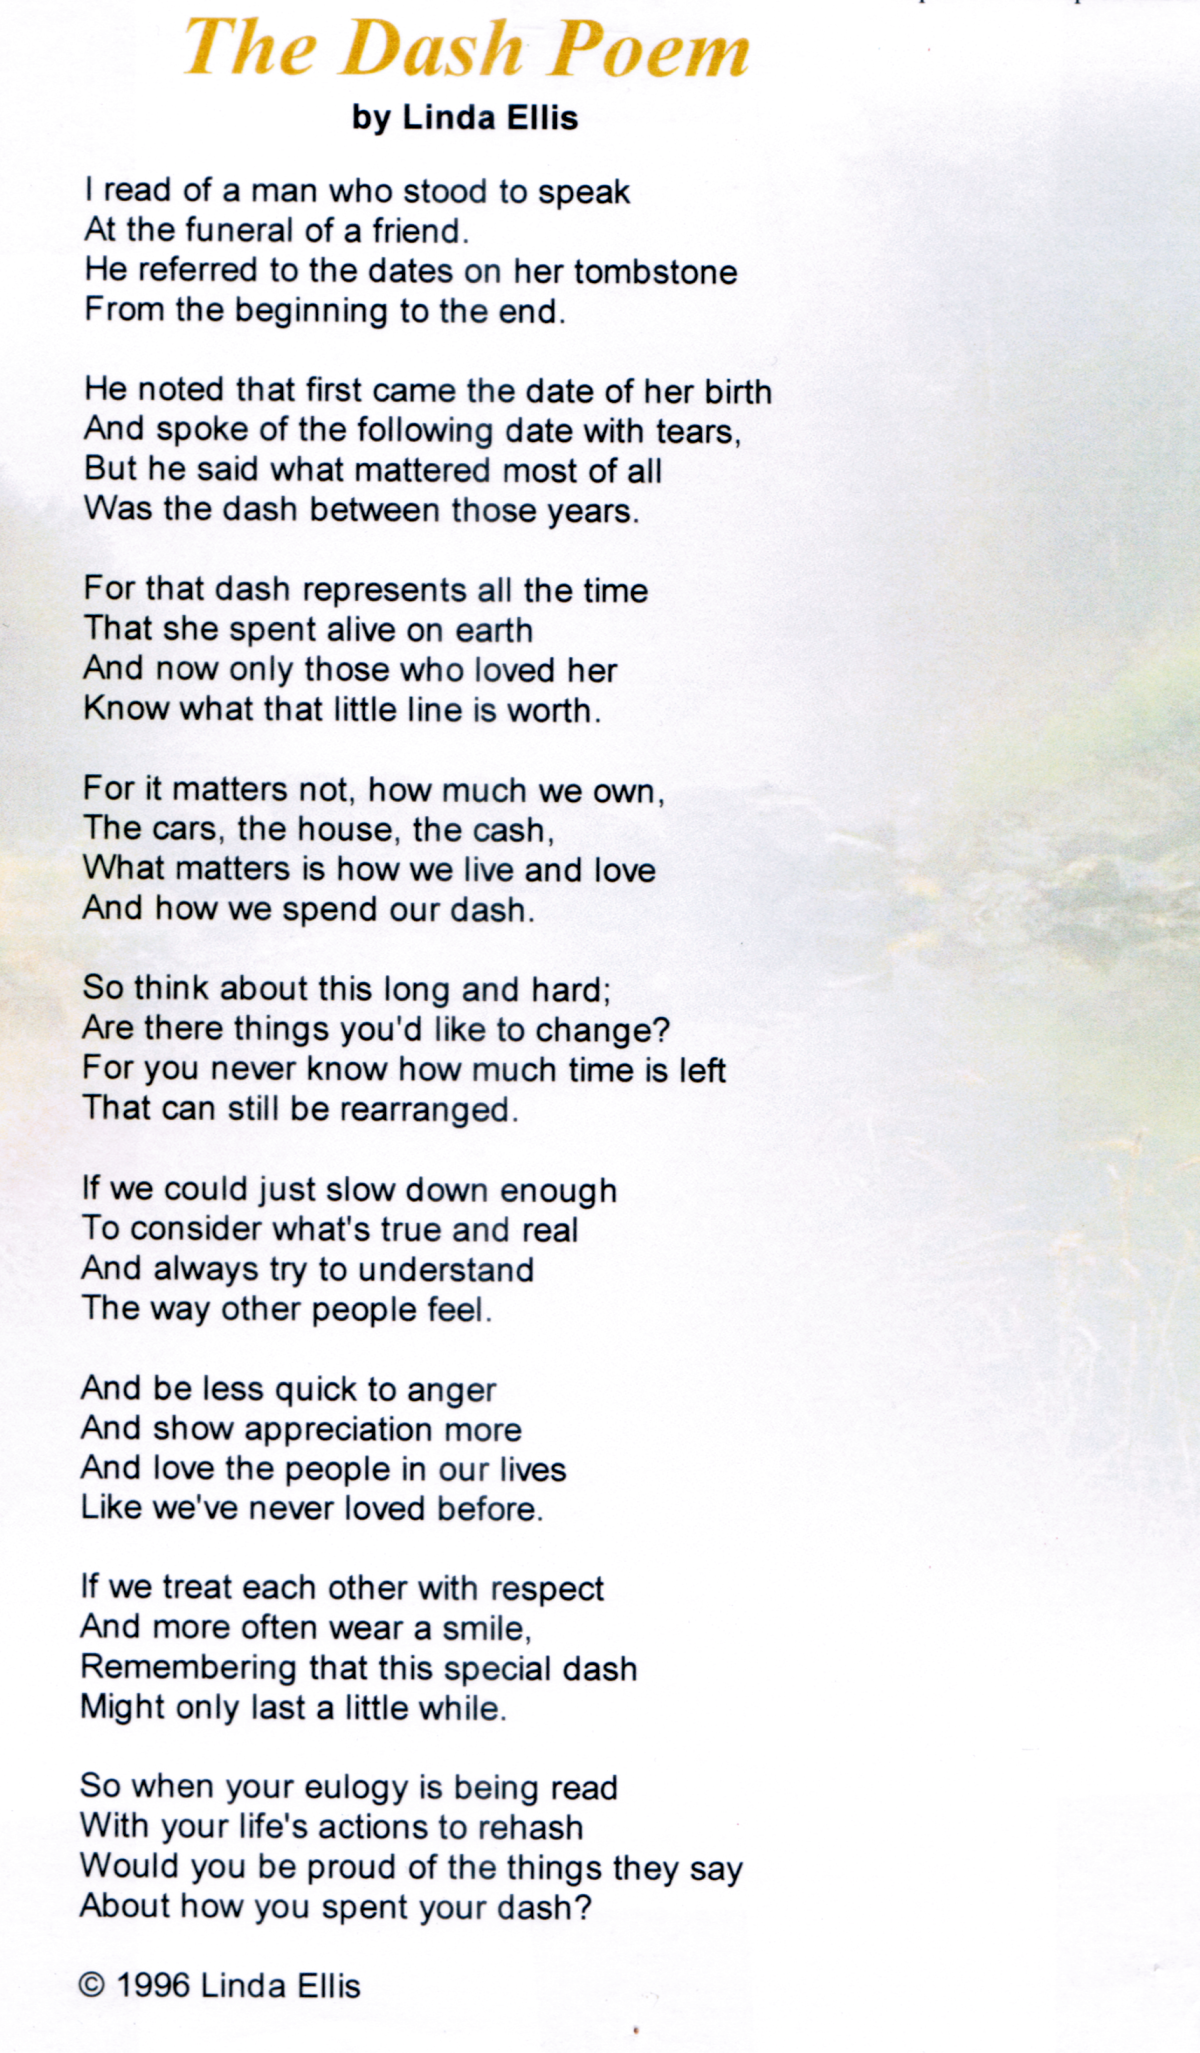 photograph about The Dash Poem Printable Free known as It was the exchange Religion Funeral poems, Poems, Poem estimates